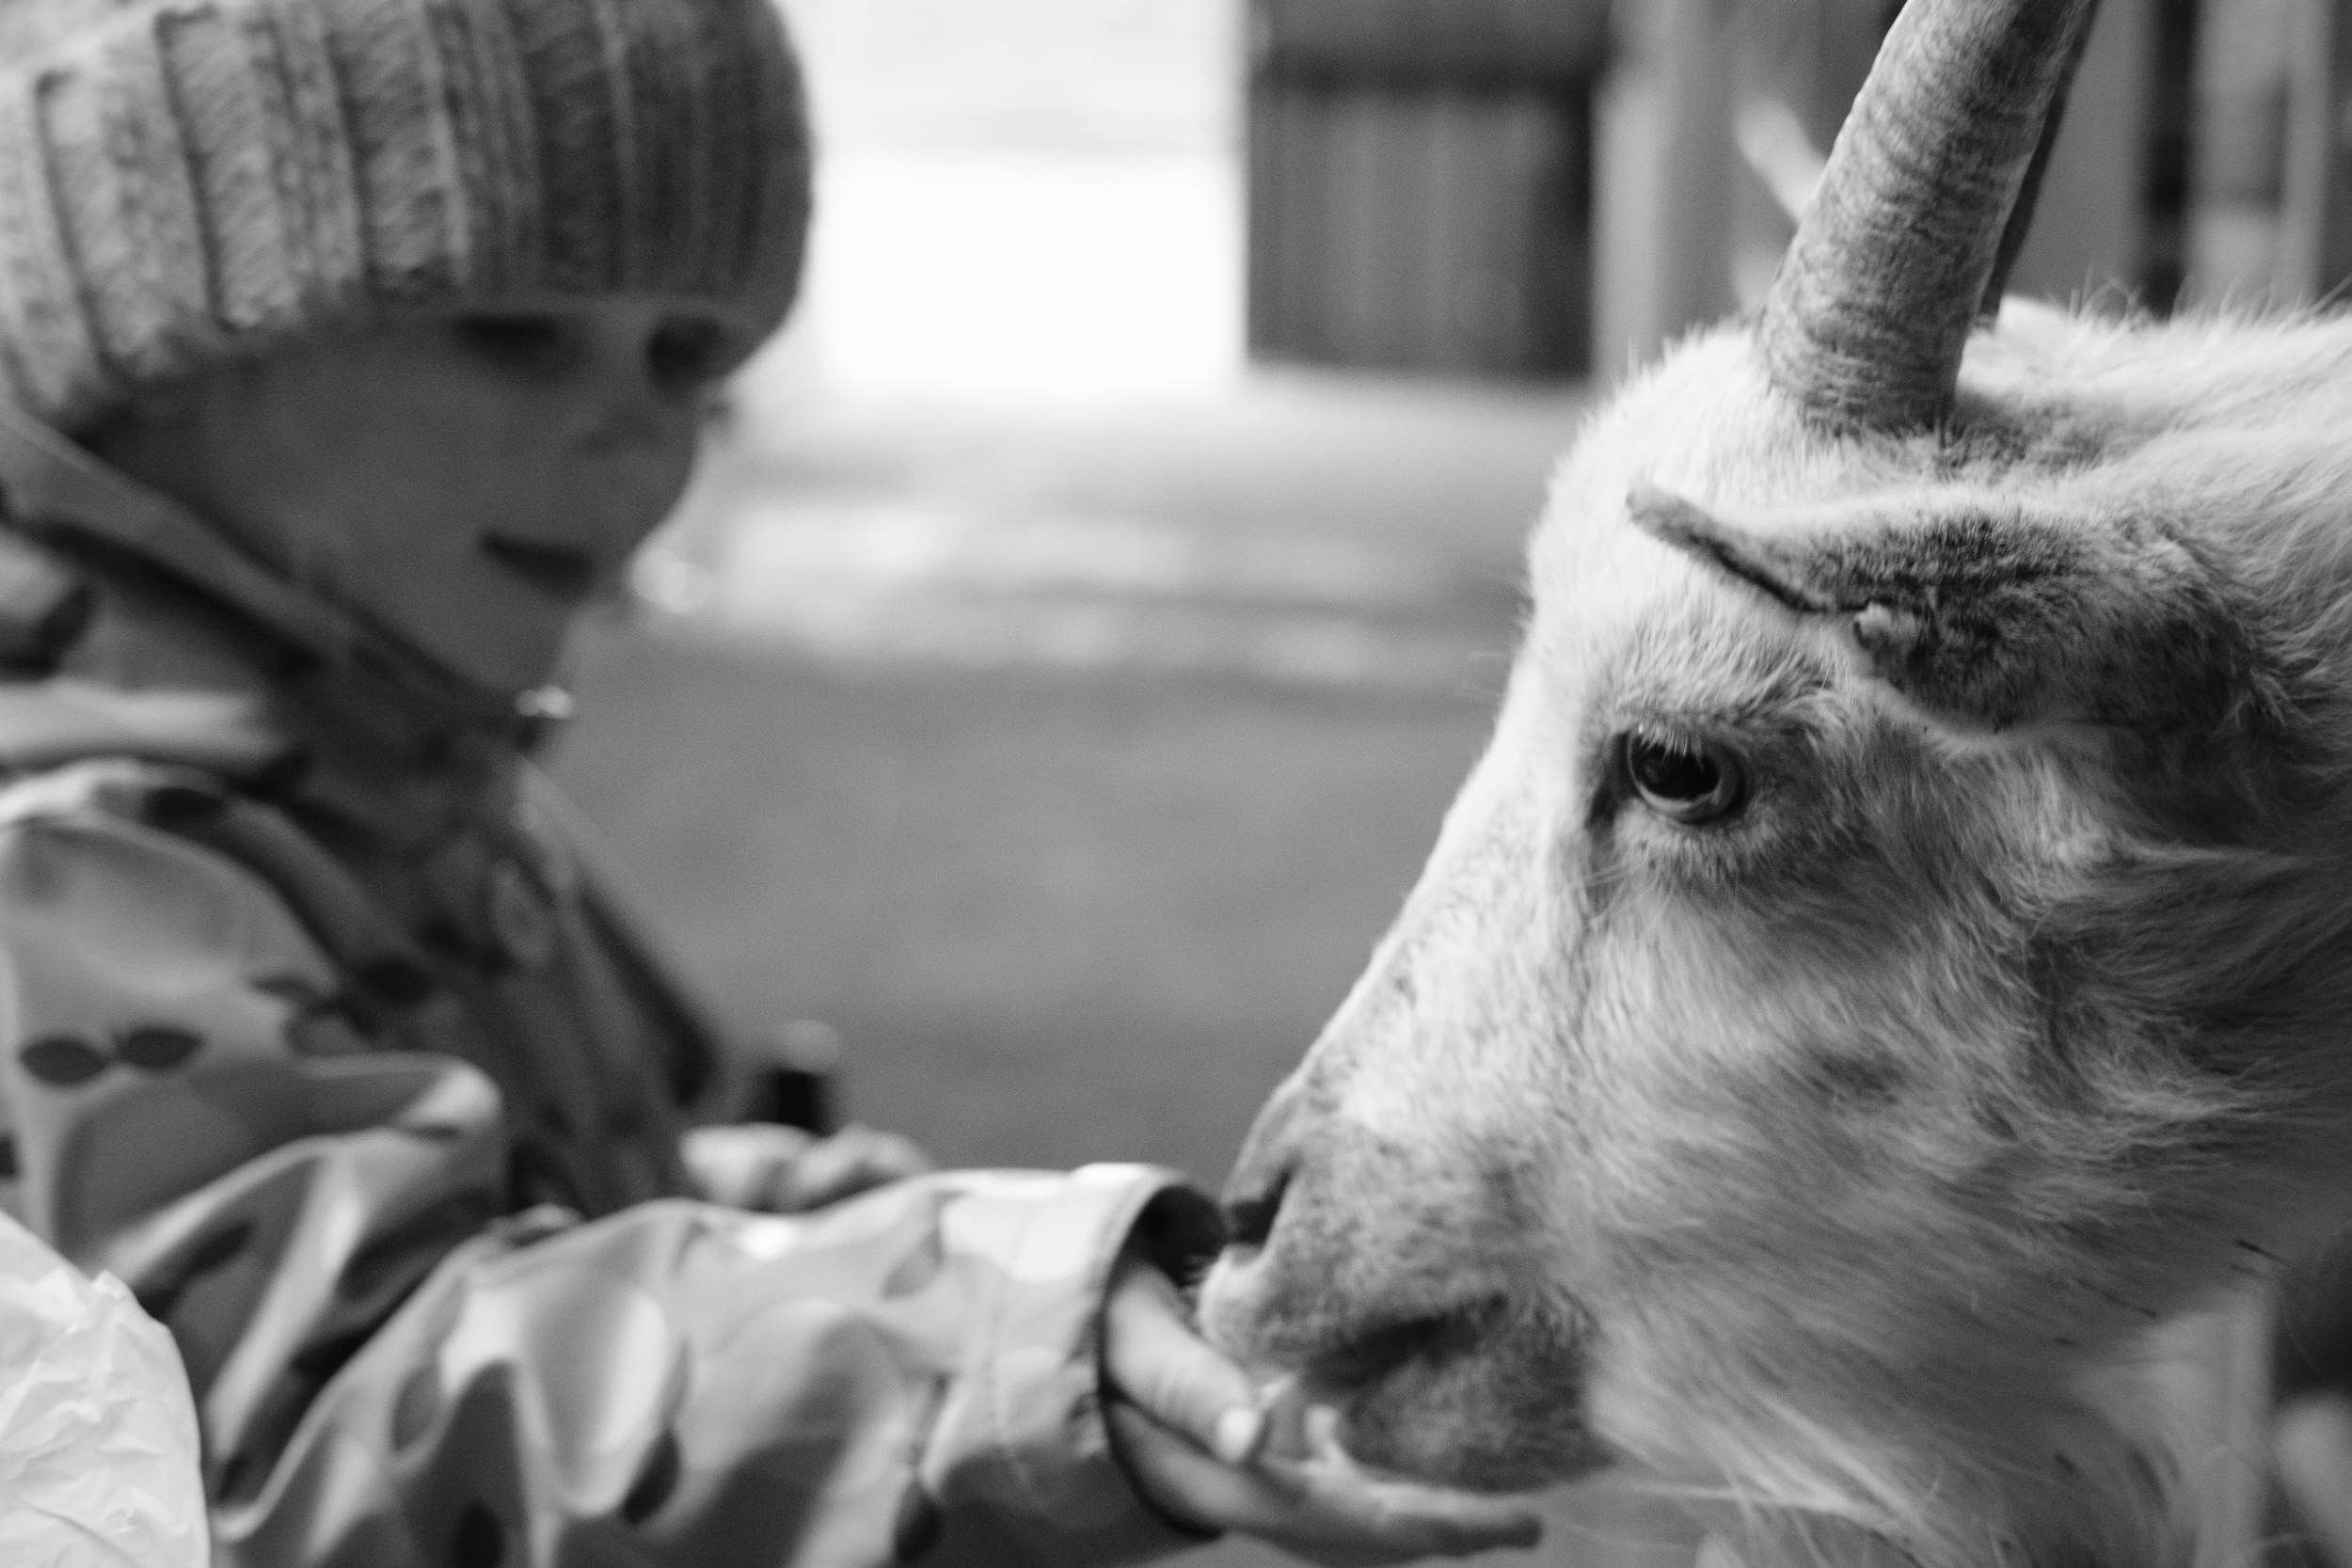 Black & White Audrey feeding goat at Eshottheugh Animal Park, Northumberland